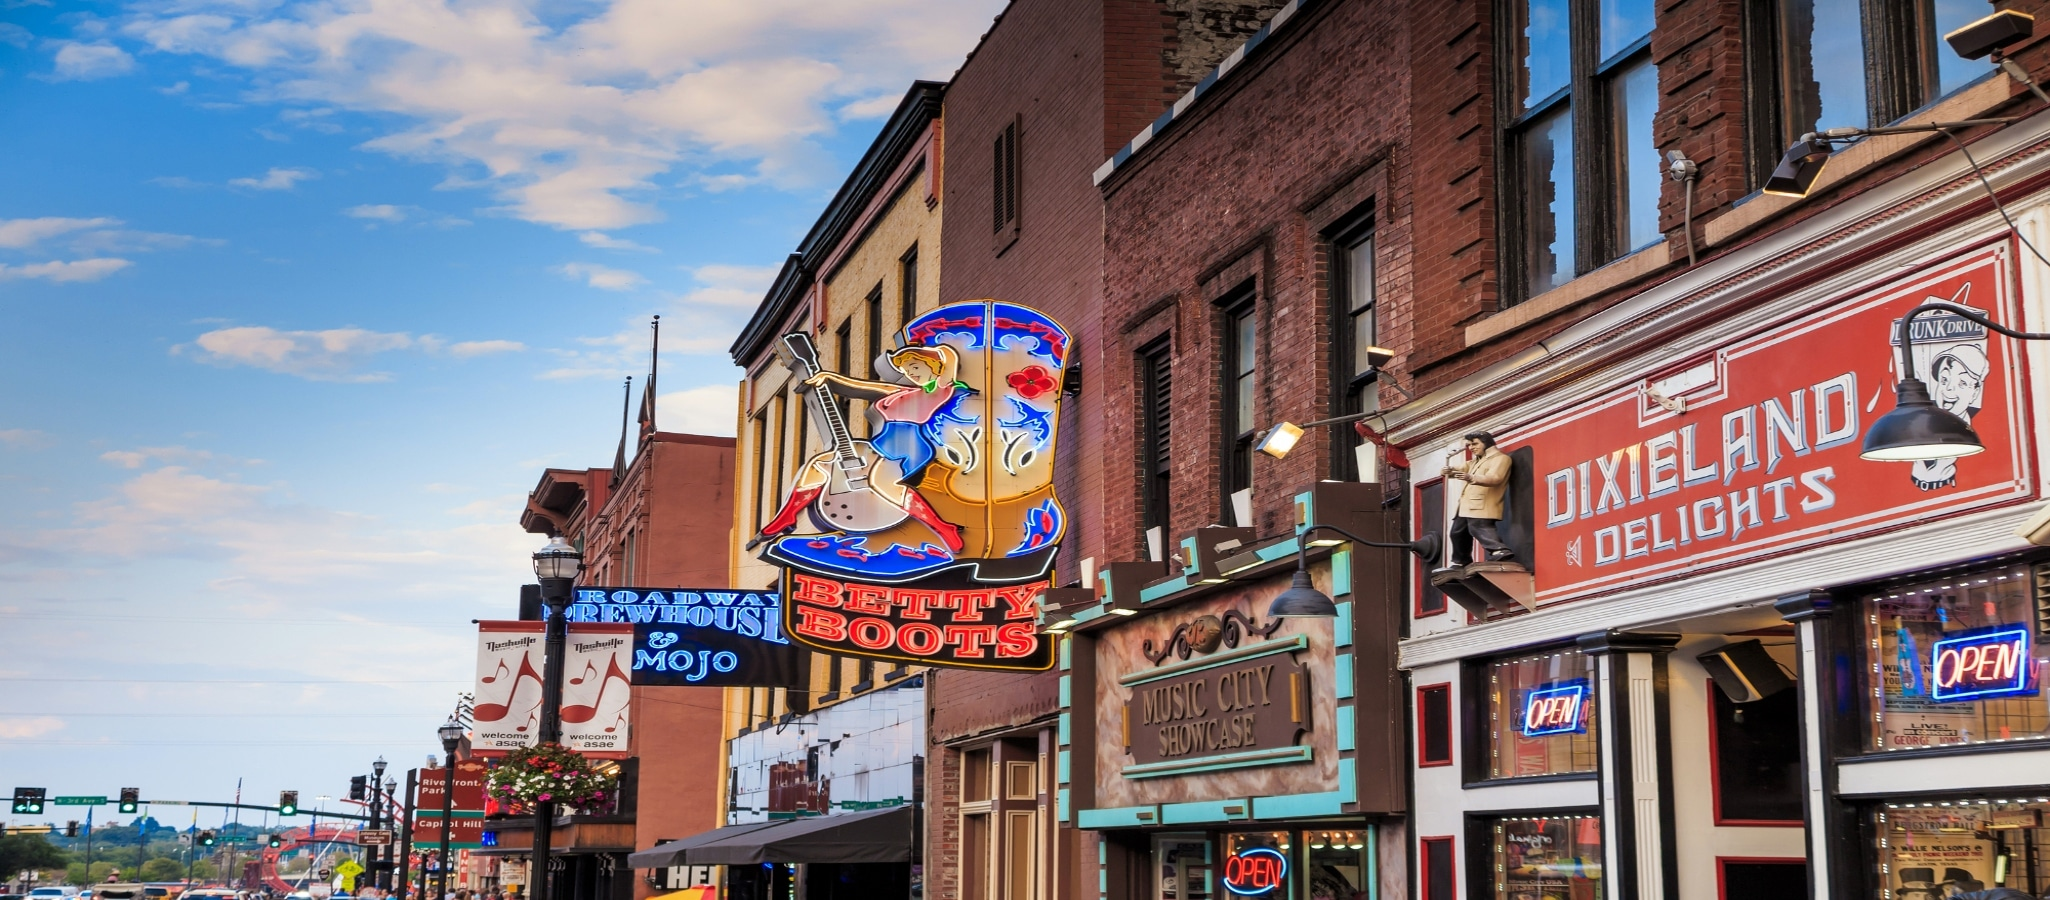 Nashville, Tennessee: Where To Stay & Play